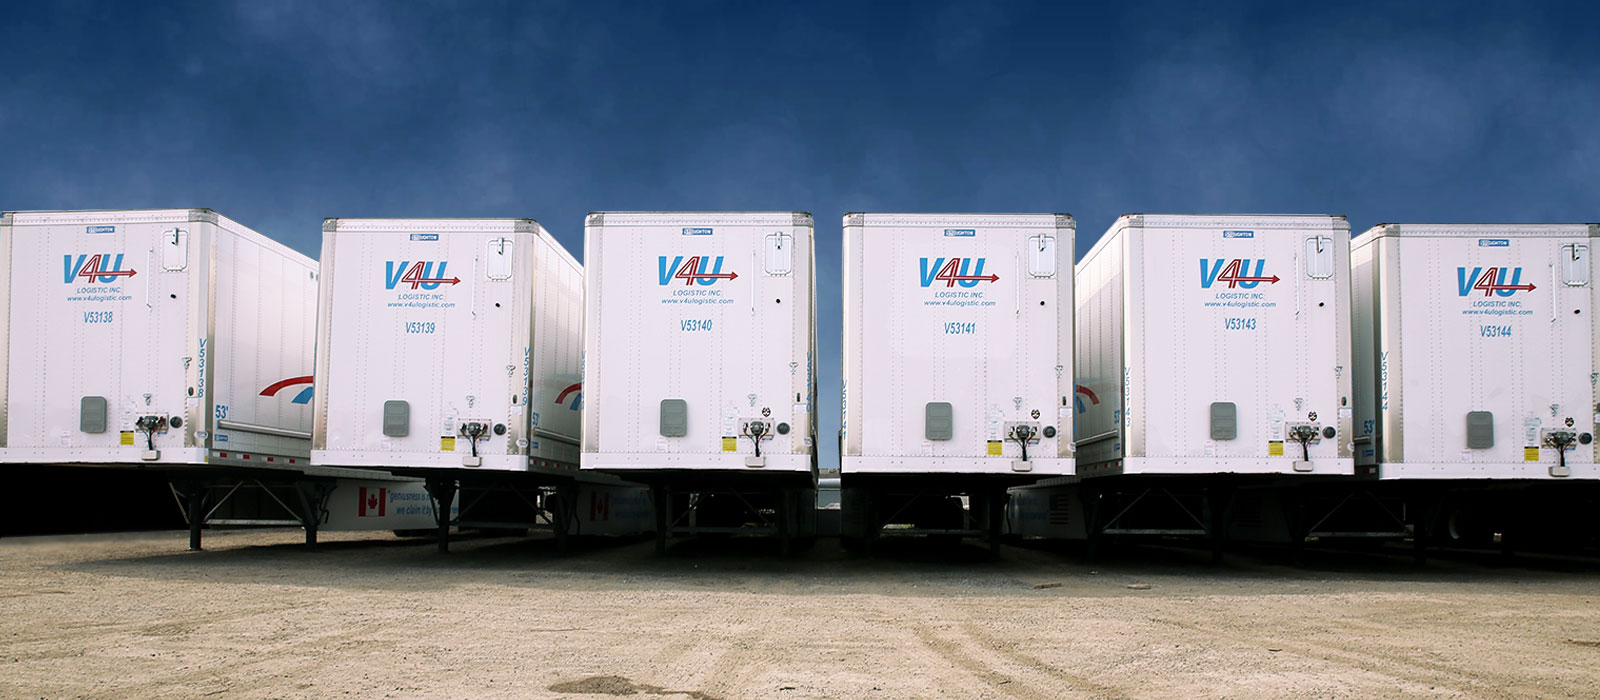 V4U Logistic Inc